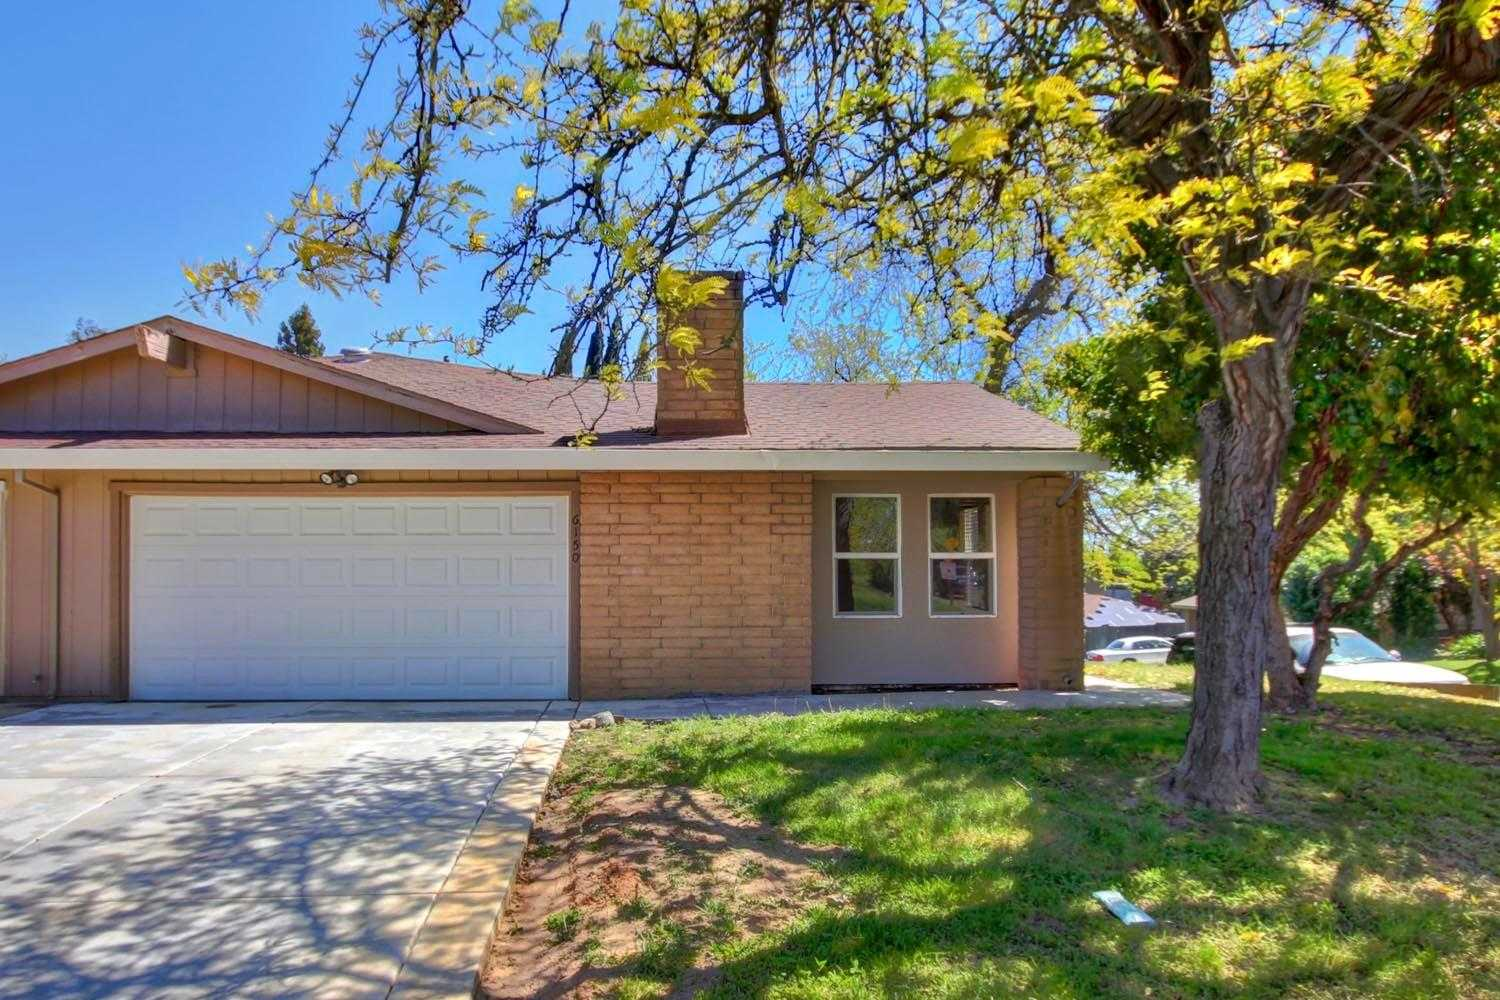 $329,000 - 3Br/2Ba -  for Sale in Stoffer Place, Orangevale